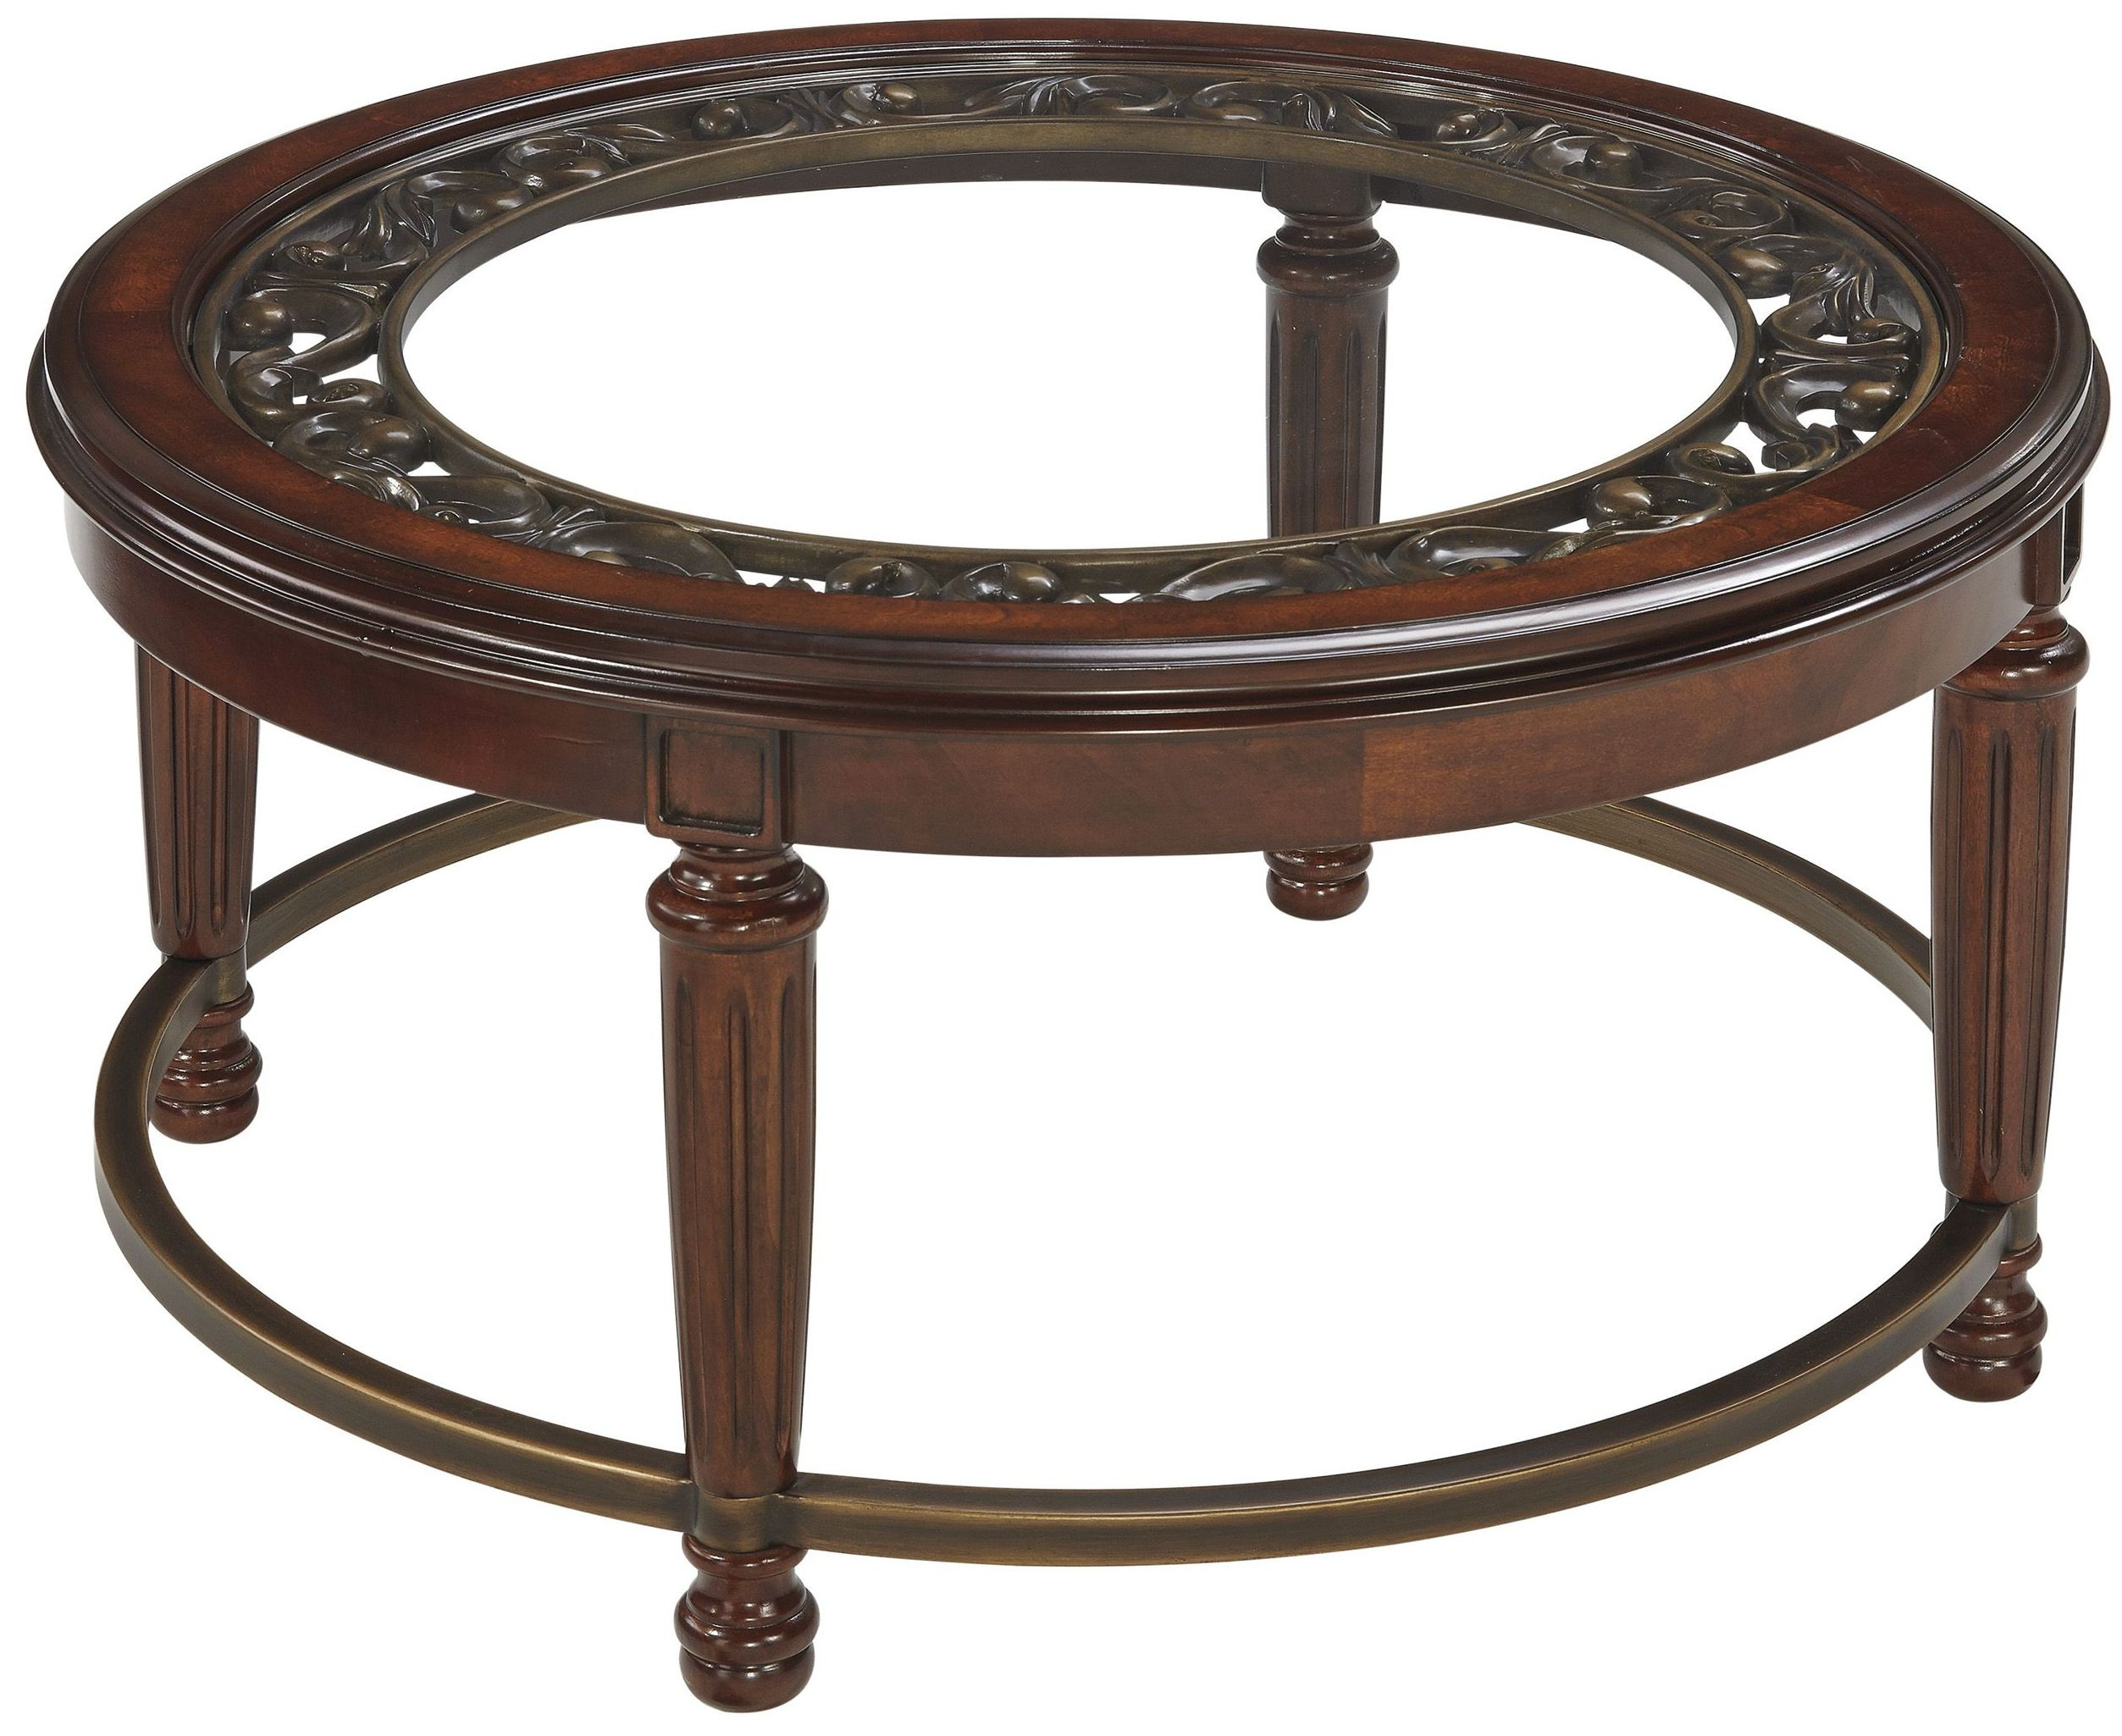 Leahlyn reddish brown round cocktail table from ashley Round cocktail table